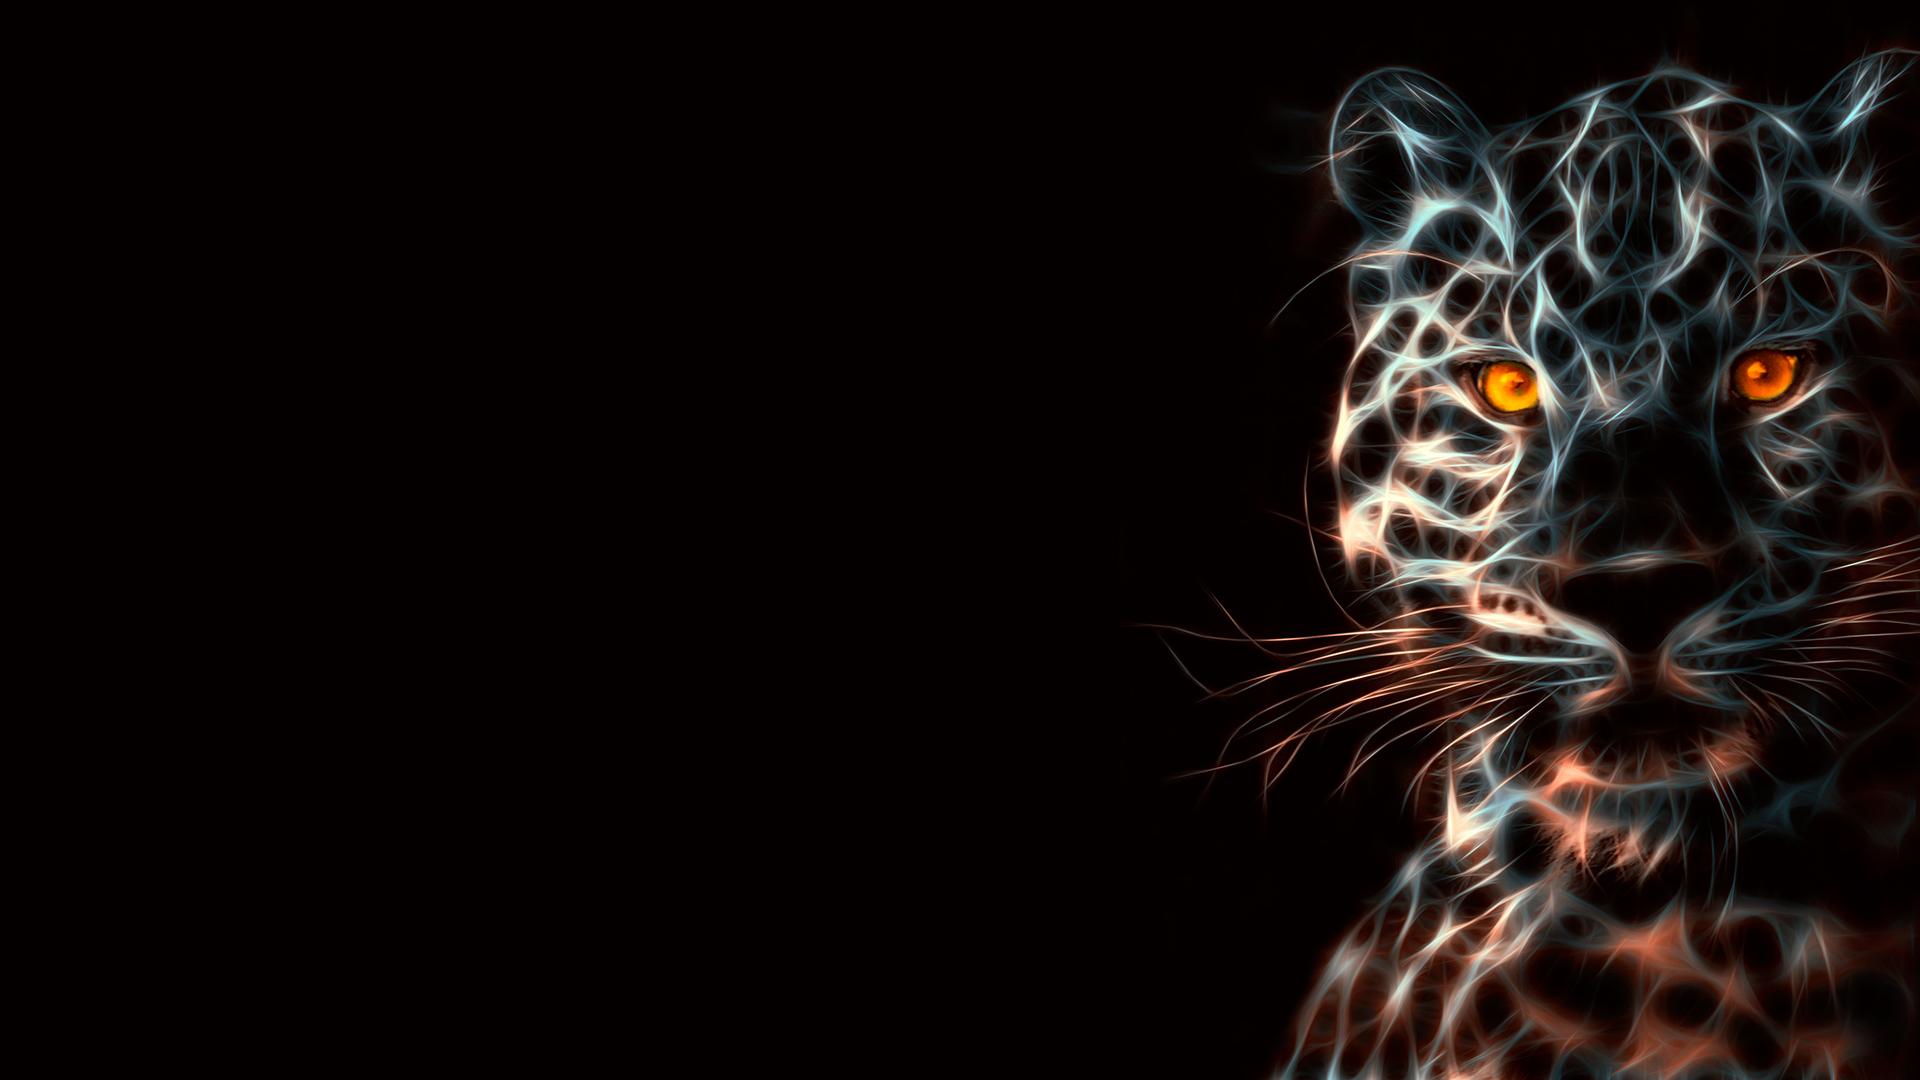 Leopard Animal Wild Art 3D HD Wallpaper   StylishHDWallpapers 1920x1080